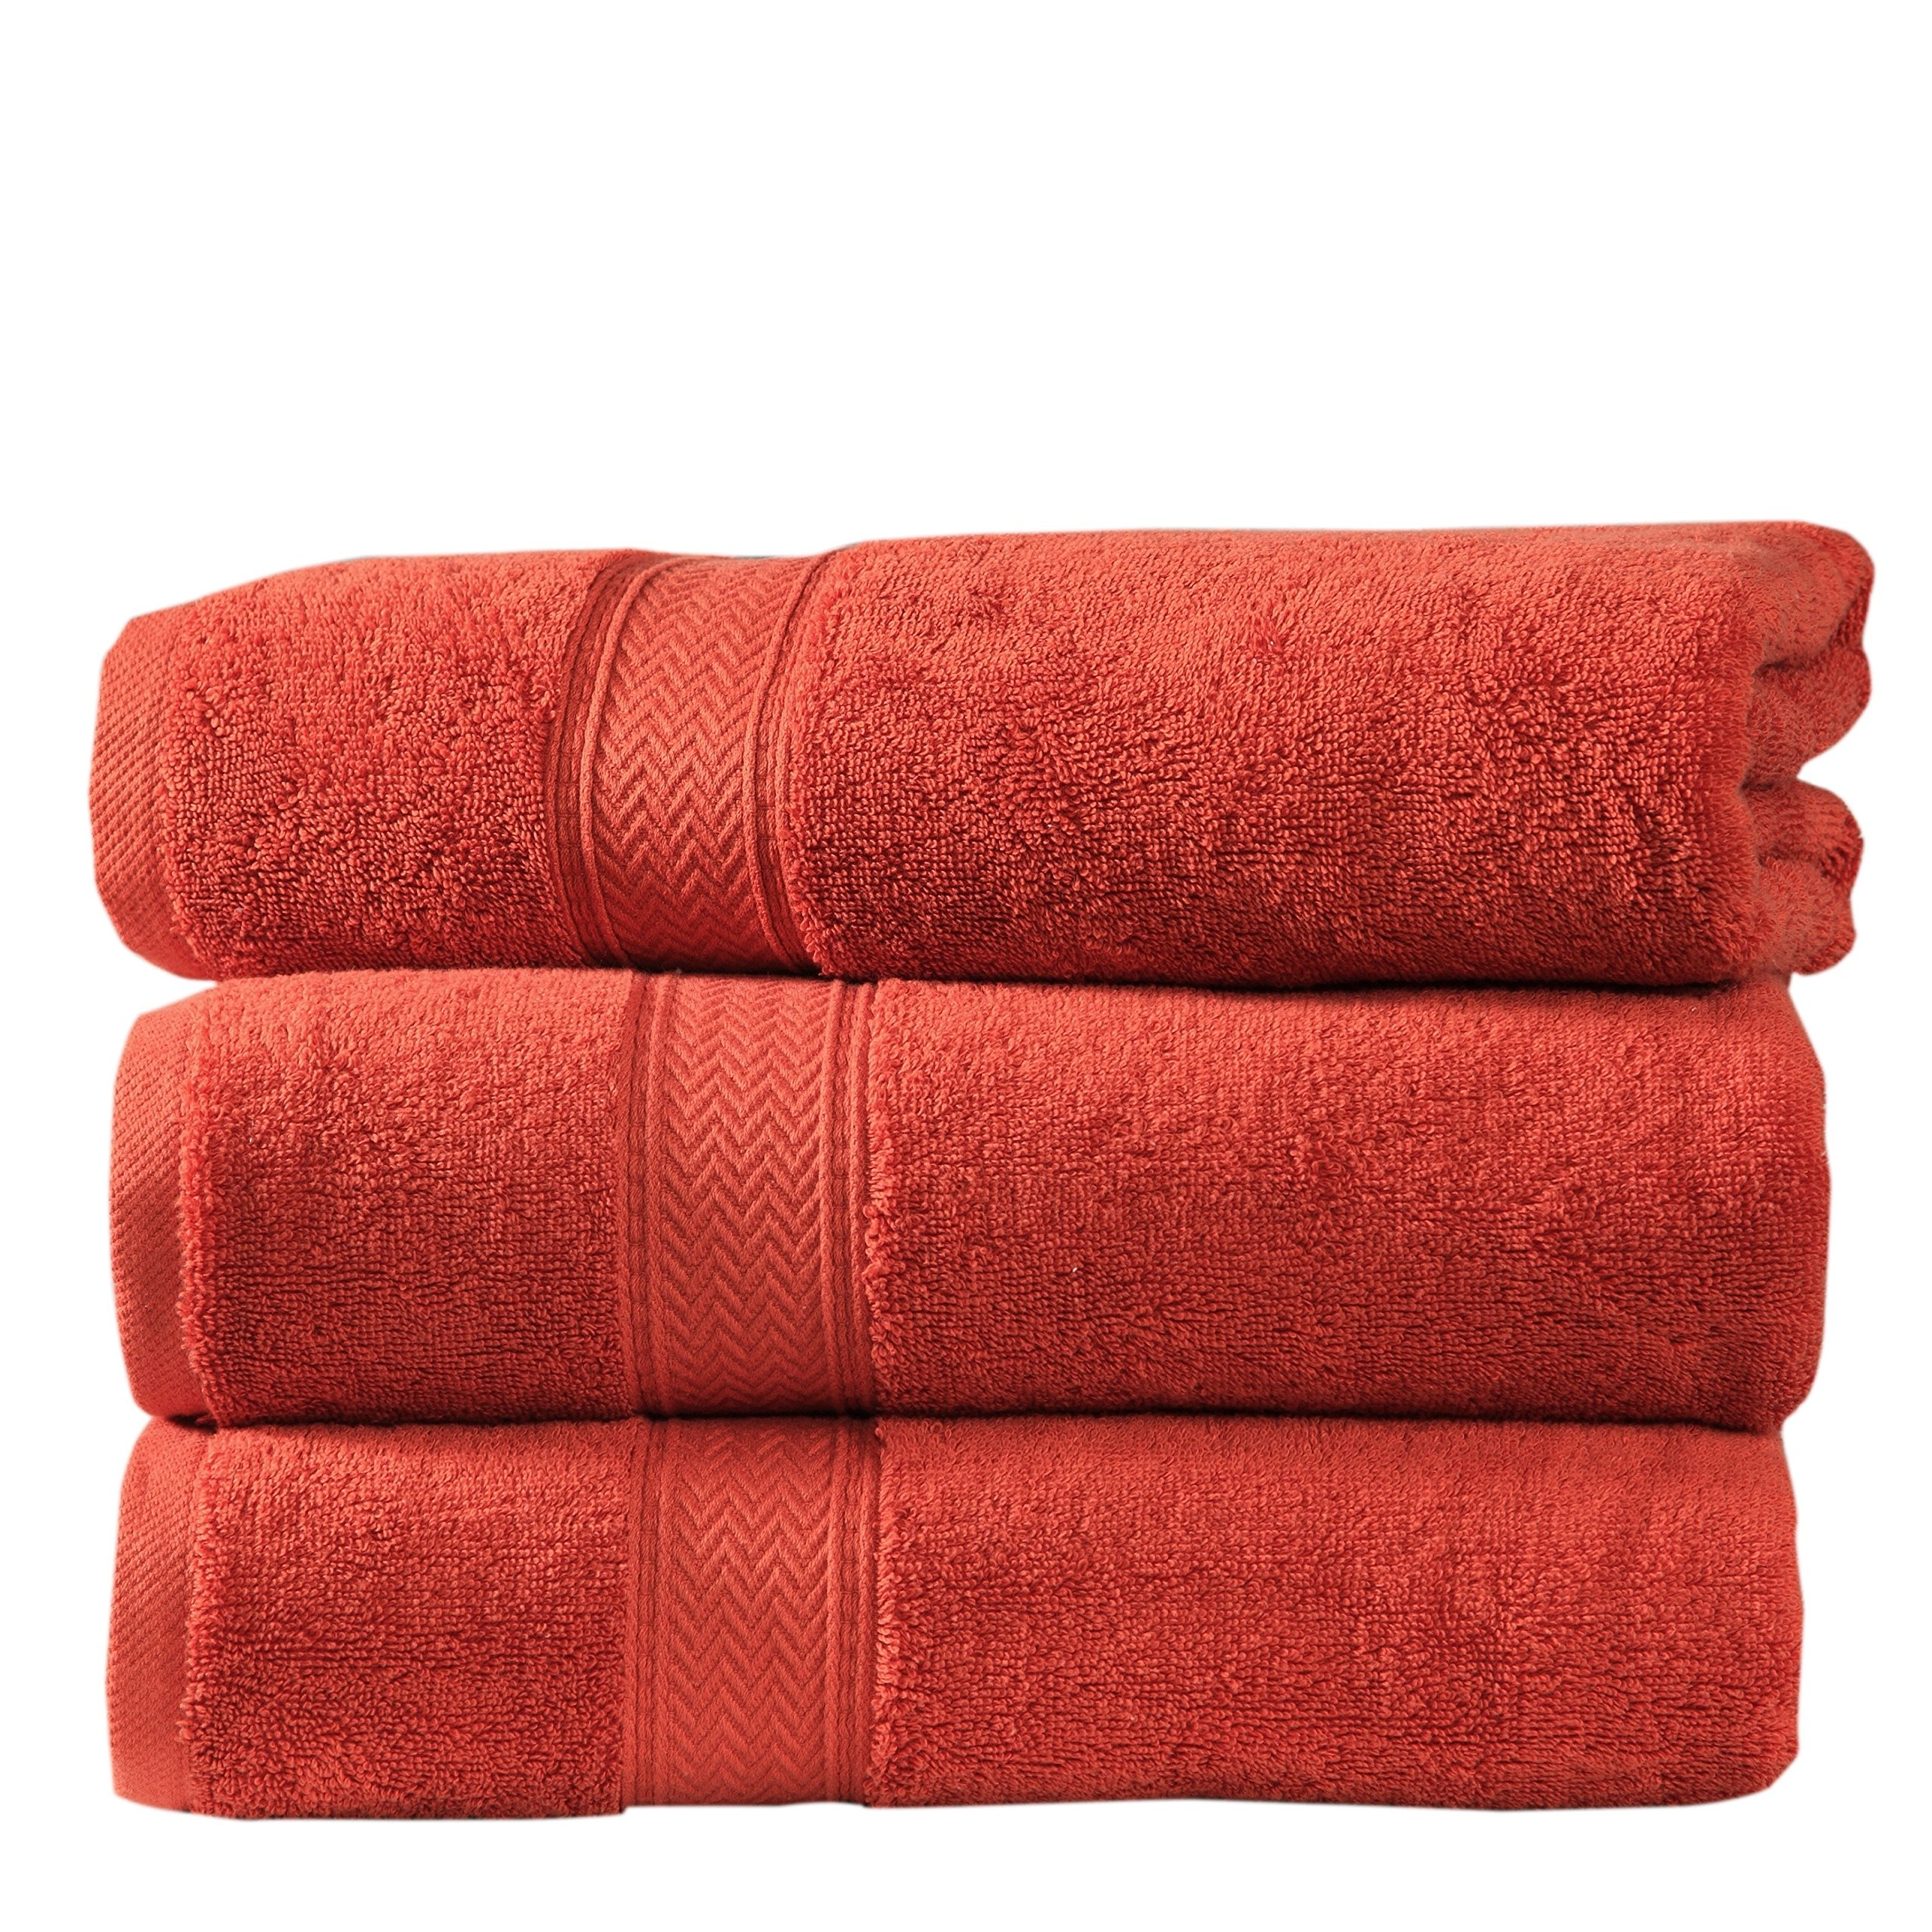 N2 3 Piece Large Oversized Rust Orange Chevron Pattern Bath Towel Set, Dobby Solid Color Oversize Bathroom Sheets Soft Spa Hotel Luxury Design Vanity Plush Low Twist Yarn Beach, Cotton